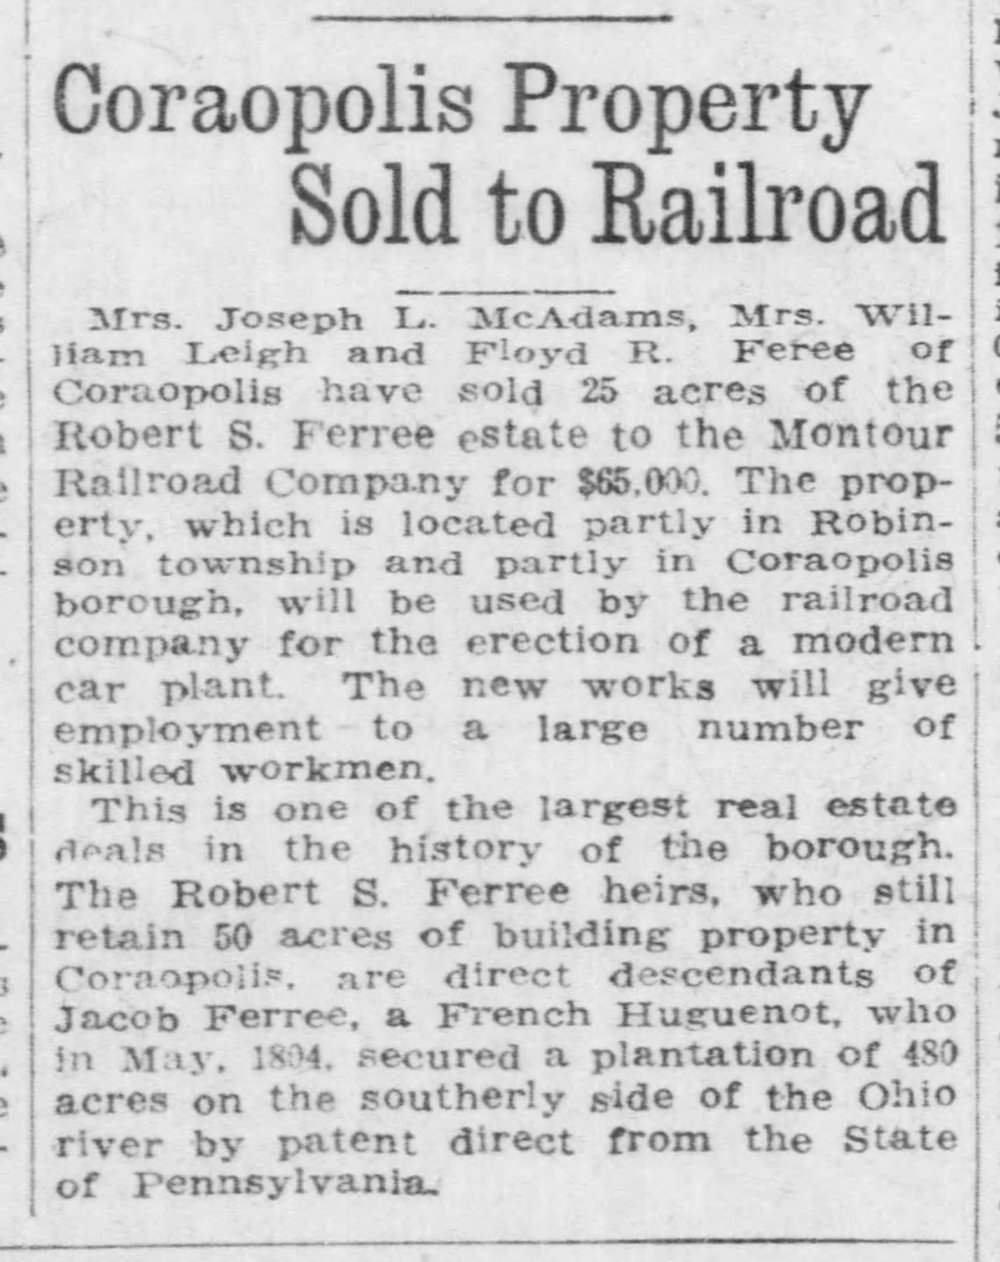 1918-12-19 Pittsburgh Daily Post - Coraopolis Property Sold to RR.jpg